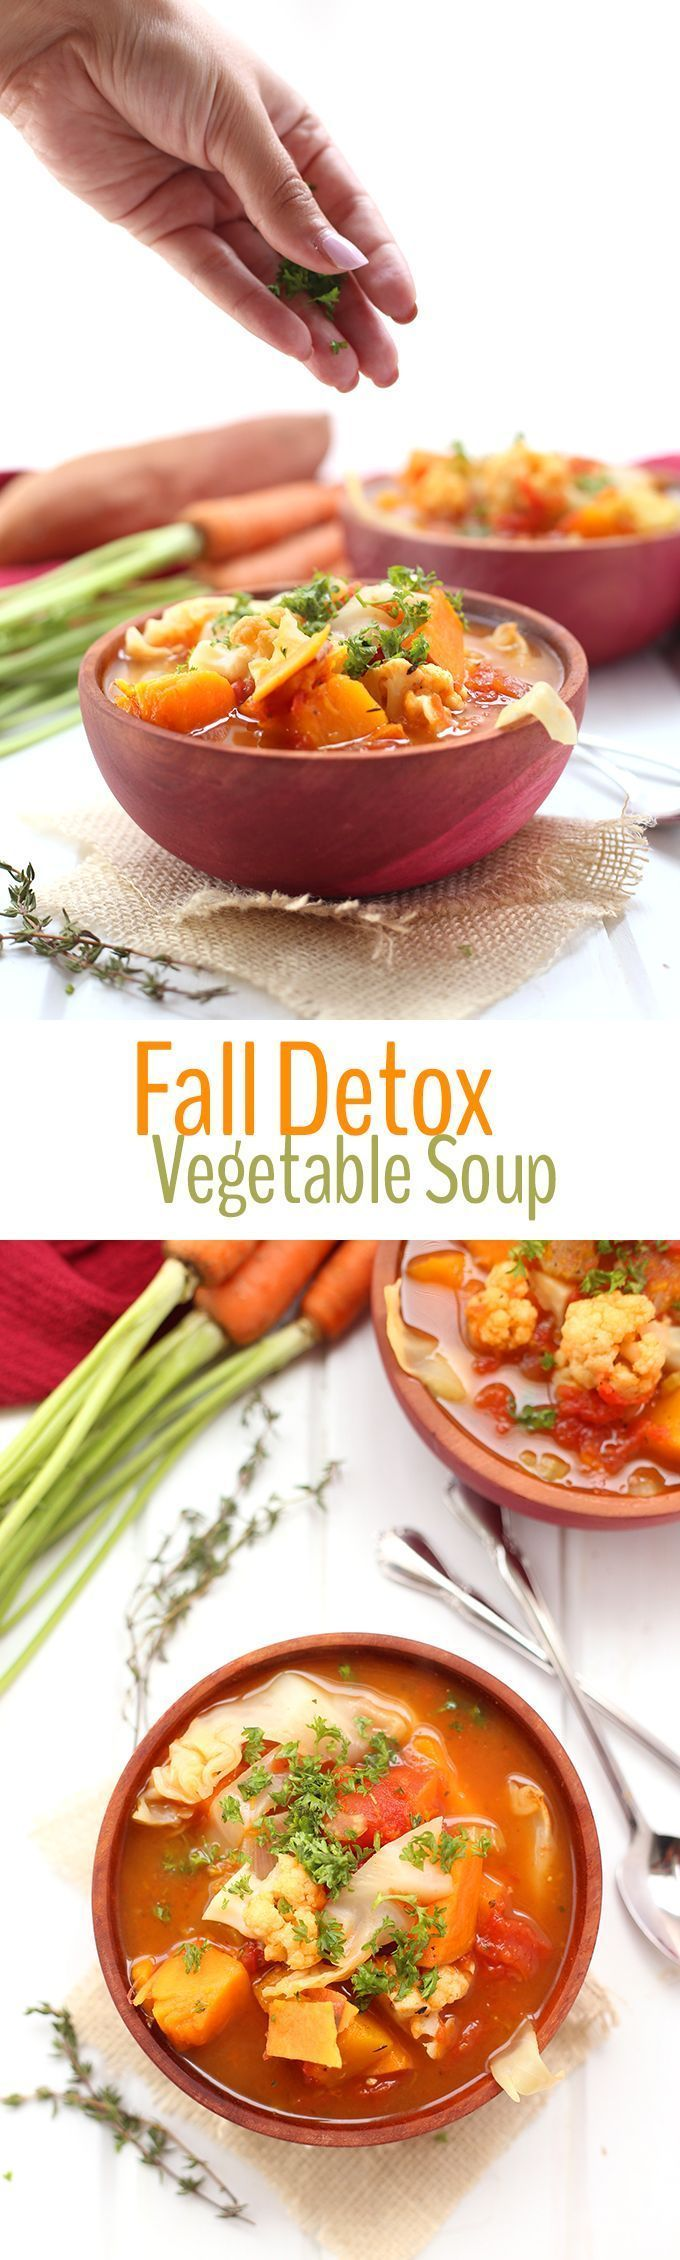 We all need a reboot every now and then so why not kickstart your clean eating this season with this Fall Detox Vegetable Soup. Made with 9 different vegetables, this soup will help you glow inside and out!